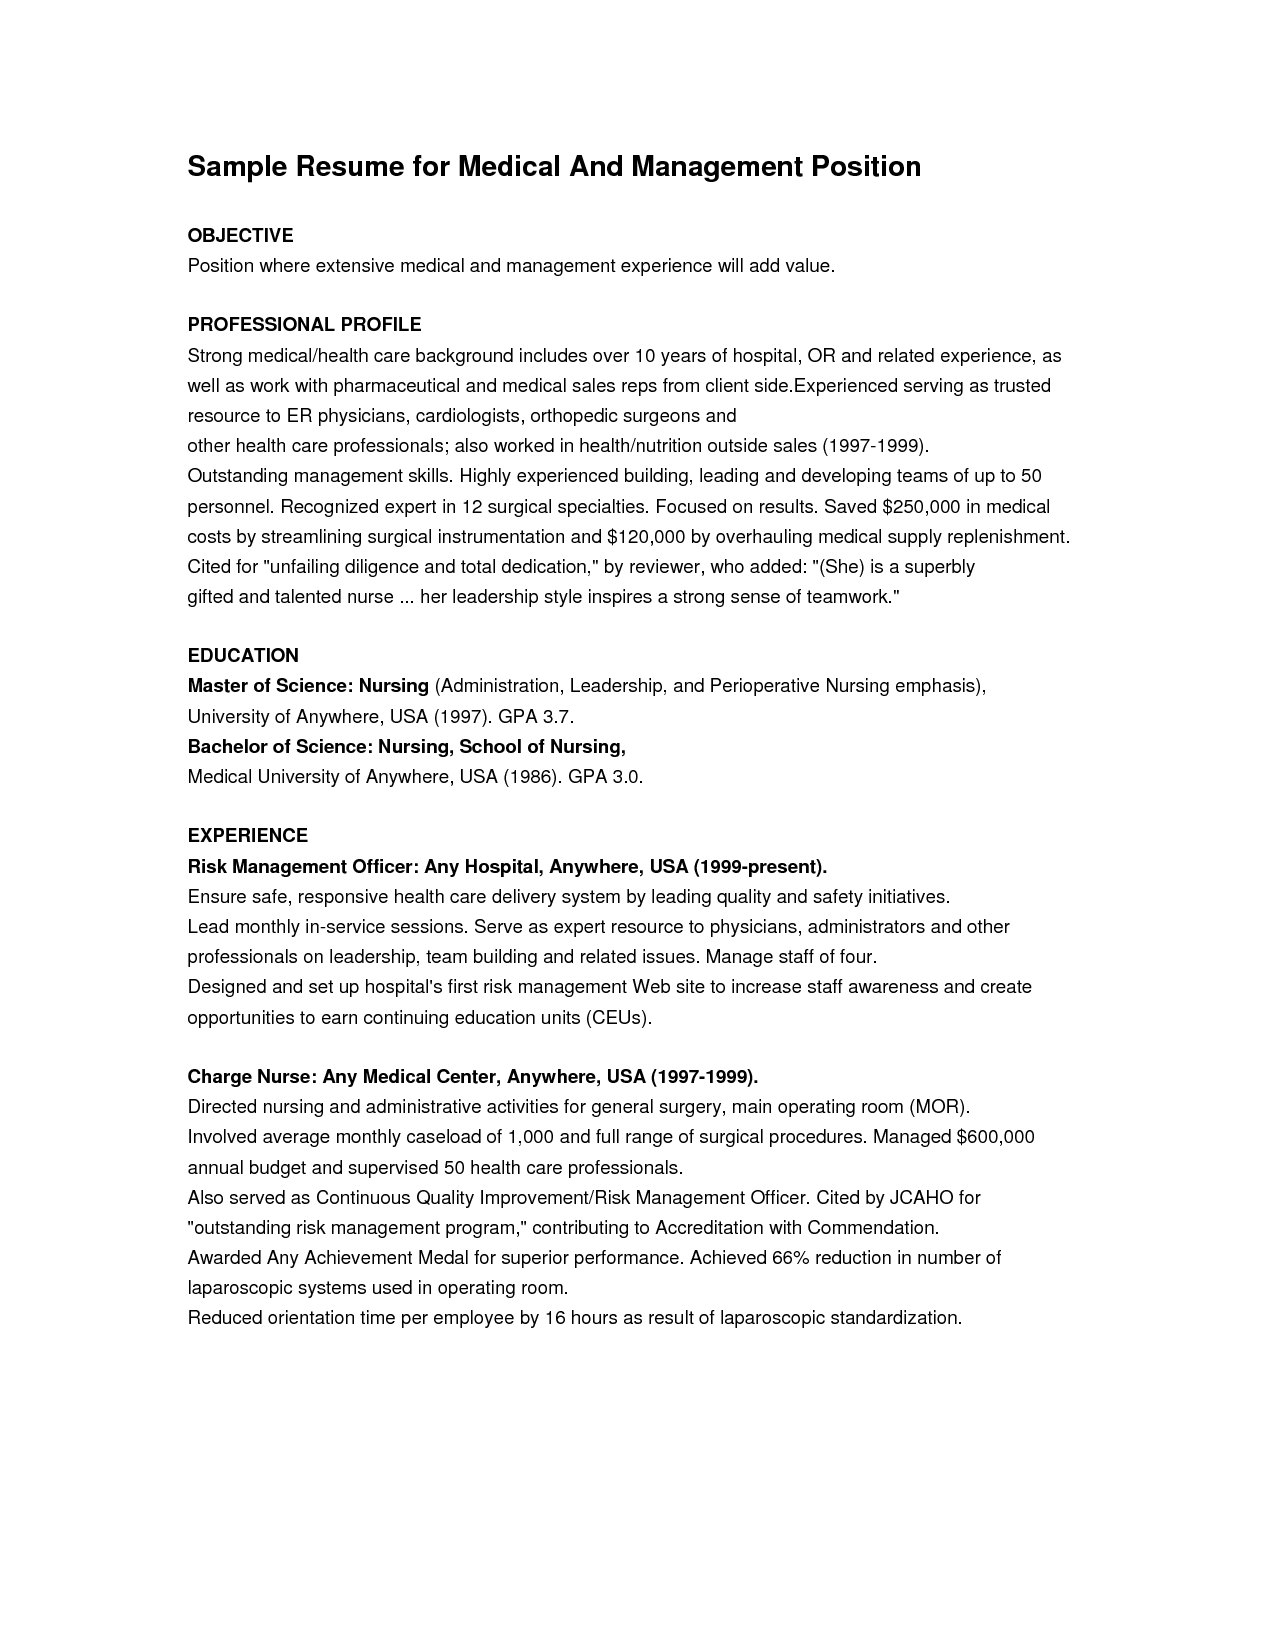 free sample objectives for resumes objective examples healthcare manager sample resume for medical and management position - Sample Resume For Leadership Position